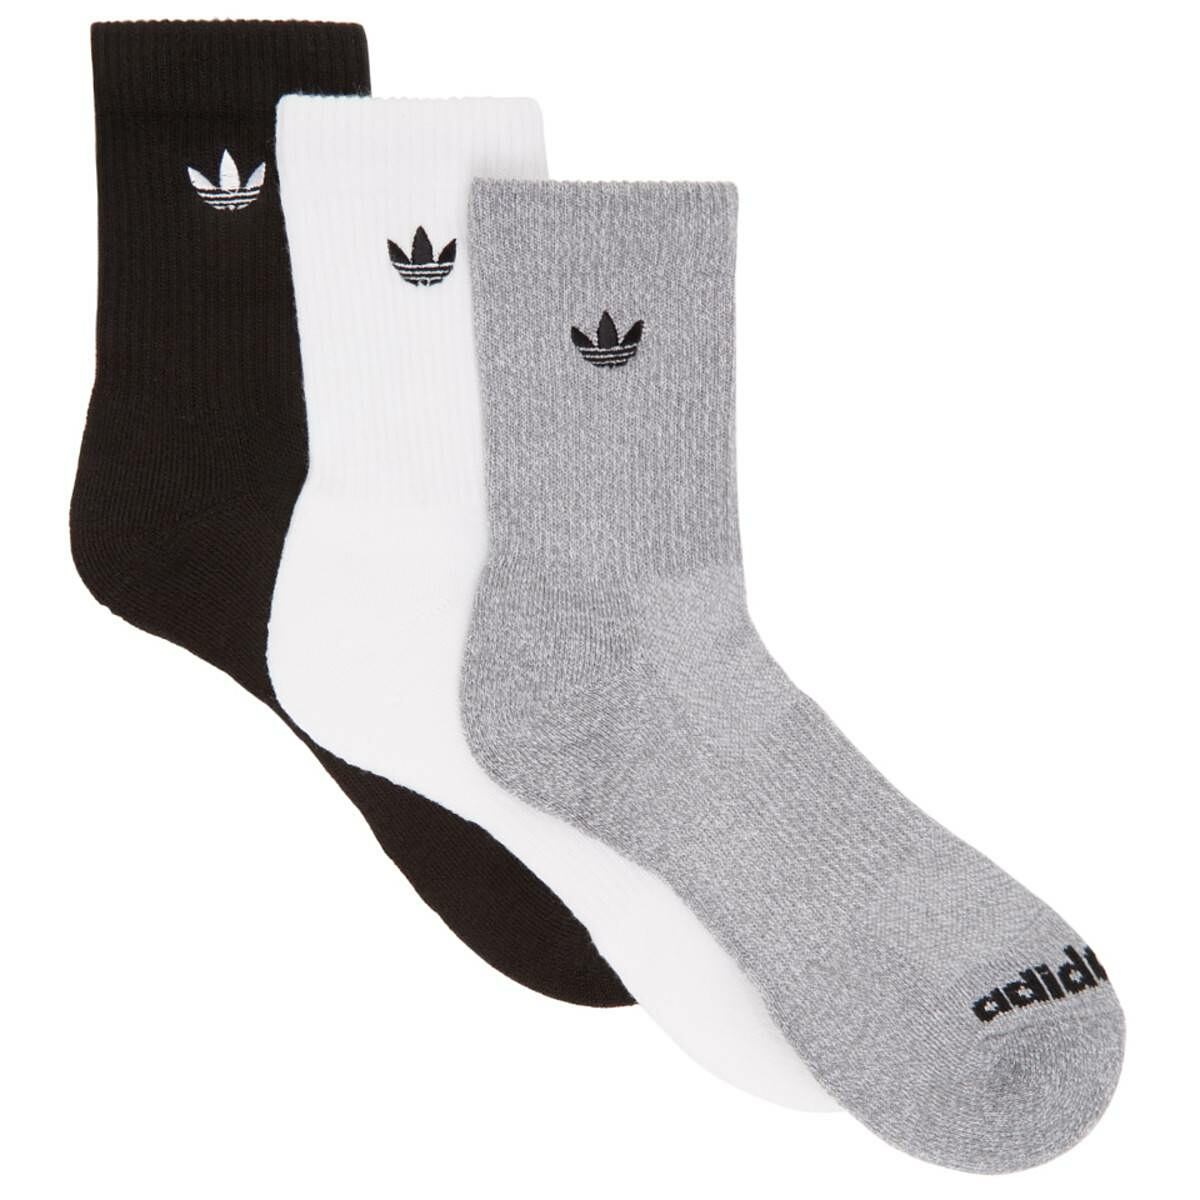 adidas Originals Three-Pack Multicolor Solid Crew Socks Ssense USA MEN Men ACCESSORIES Mens SOCKS